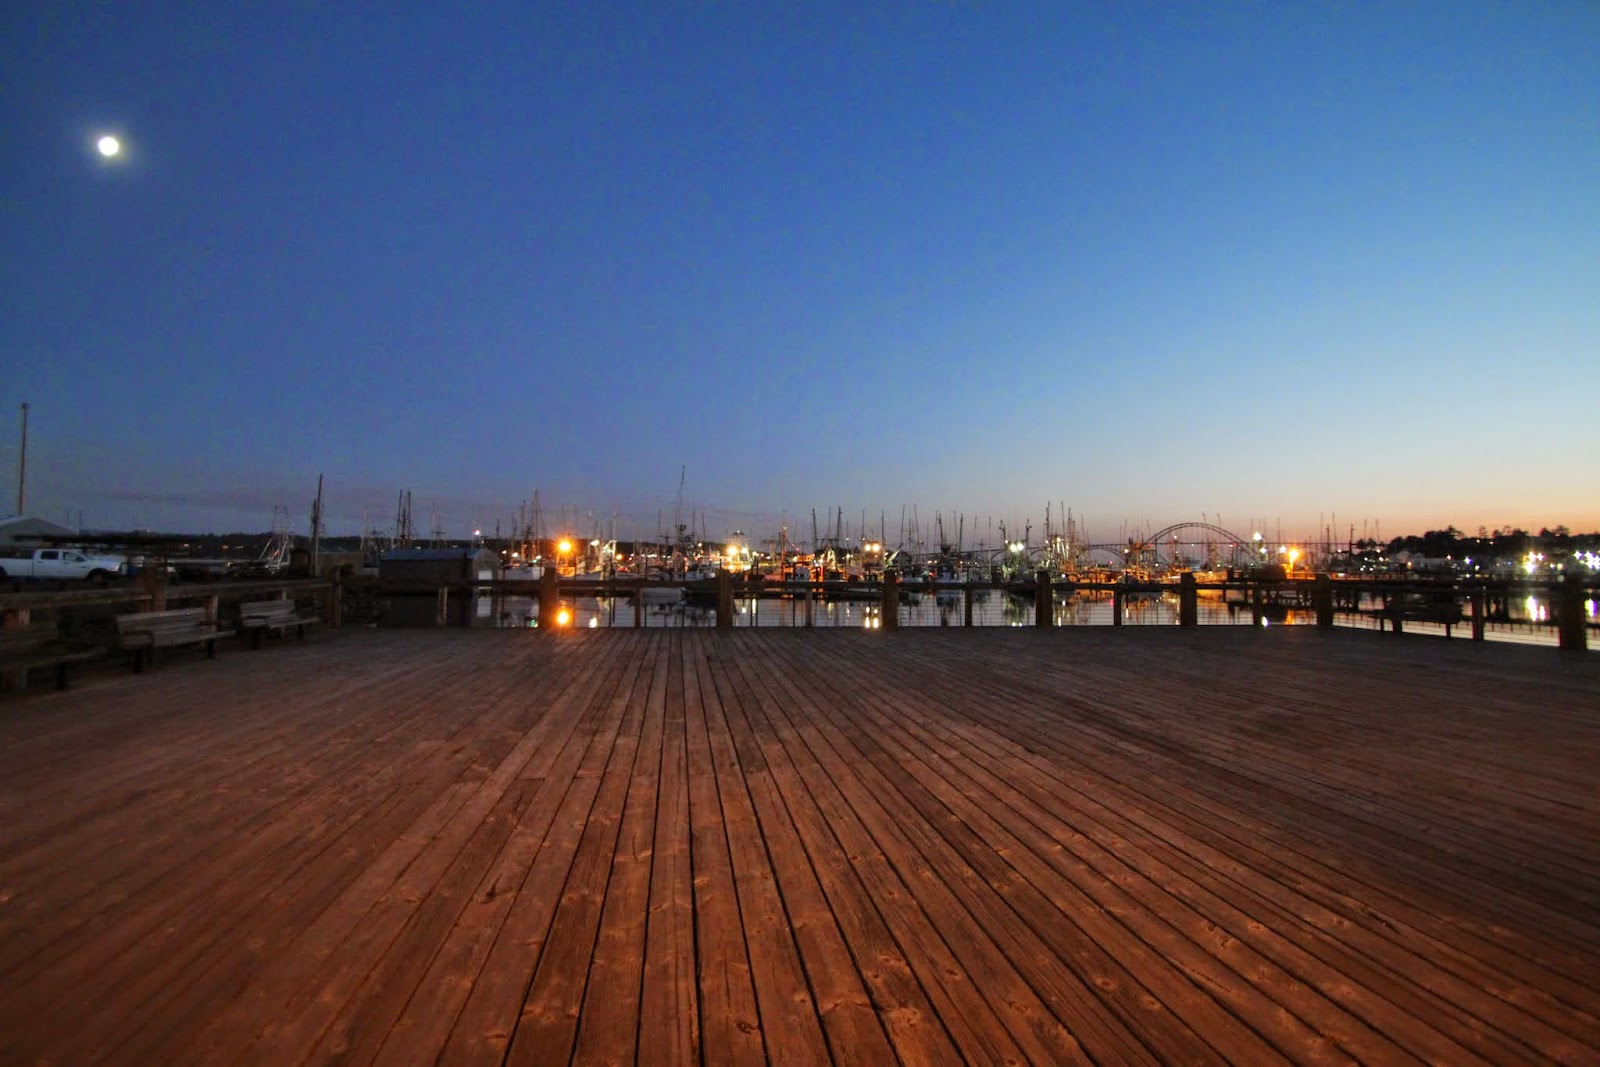 Historic Newport Bayfront boardwalk